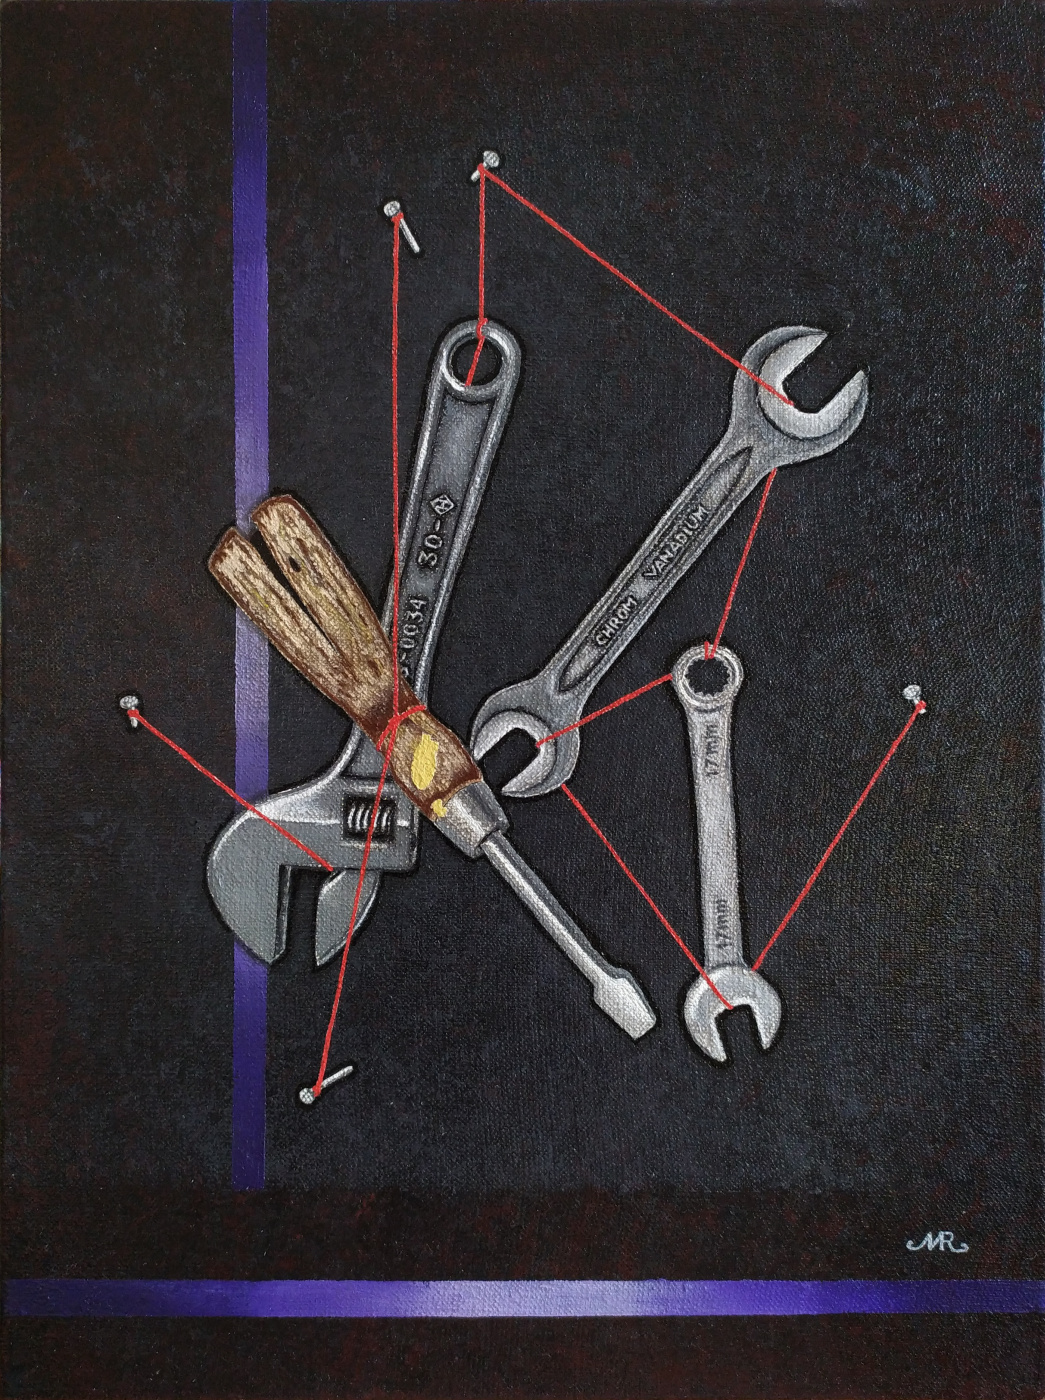 Mike ronin. Dance of Wrenches